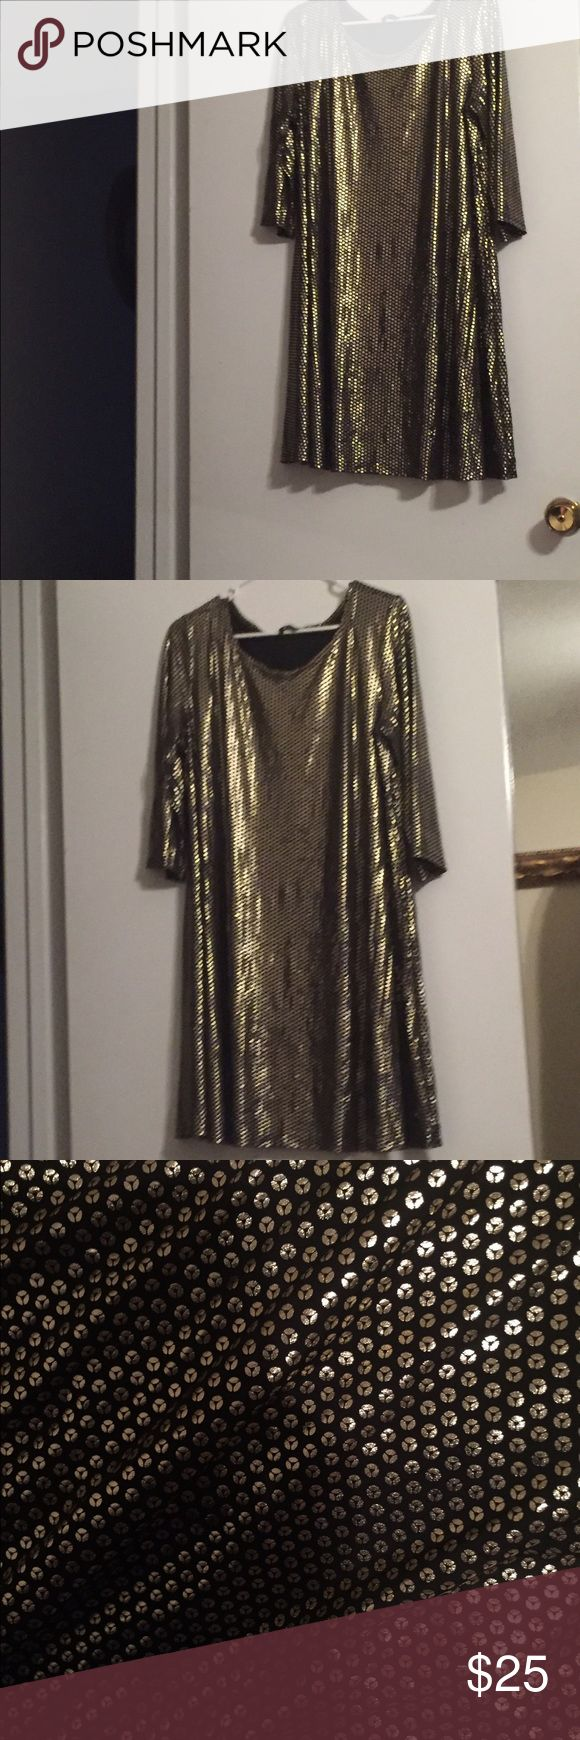 Metallic Gold polka dot dress Gorgeous dress!! Perfect for a special occasion. Only worn once. The dress feels so good. Knee length. ❤😃 Dresses Midi